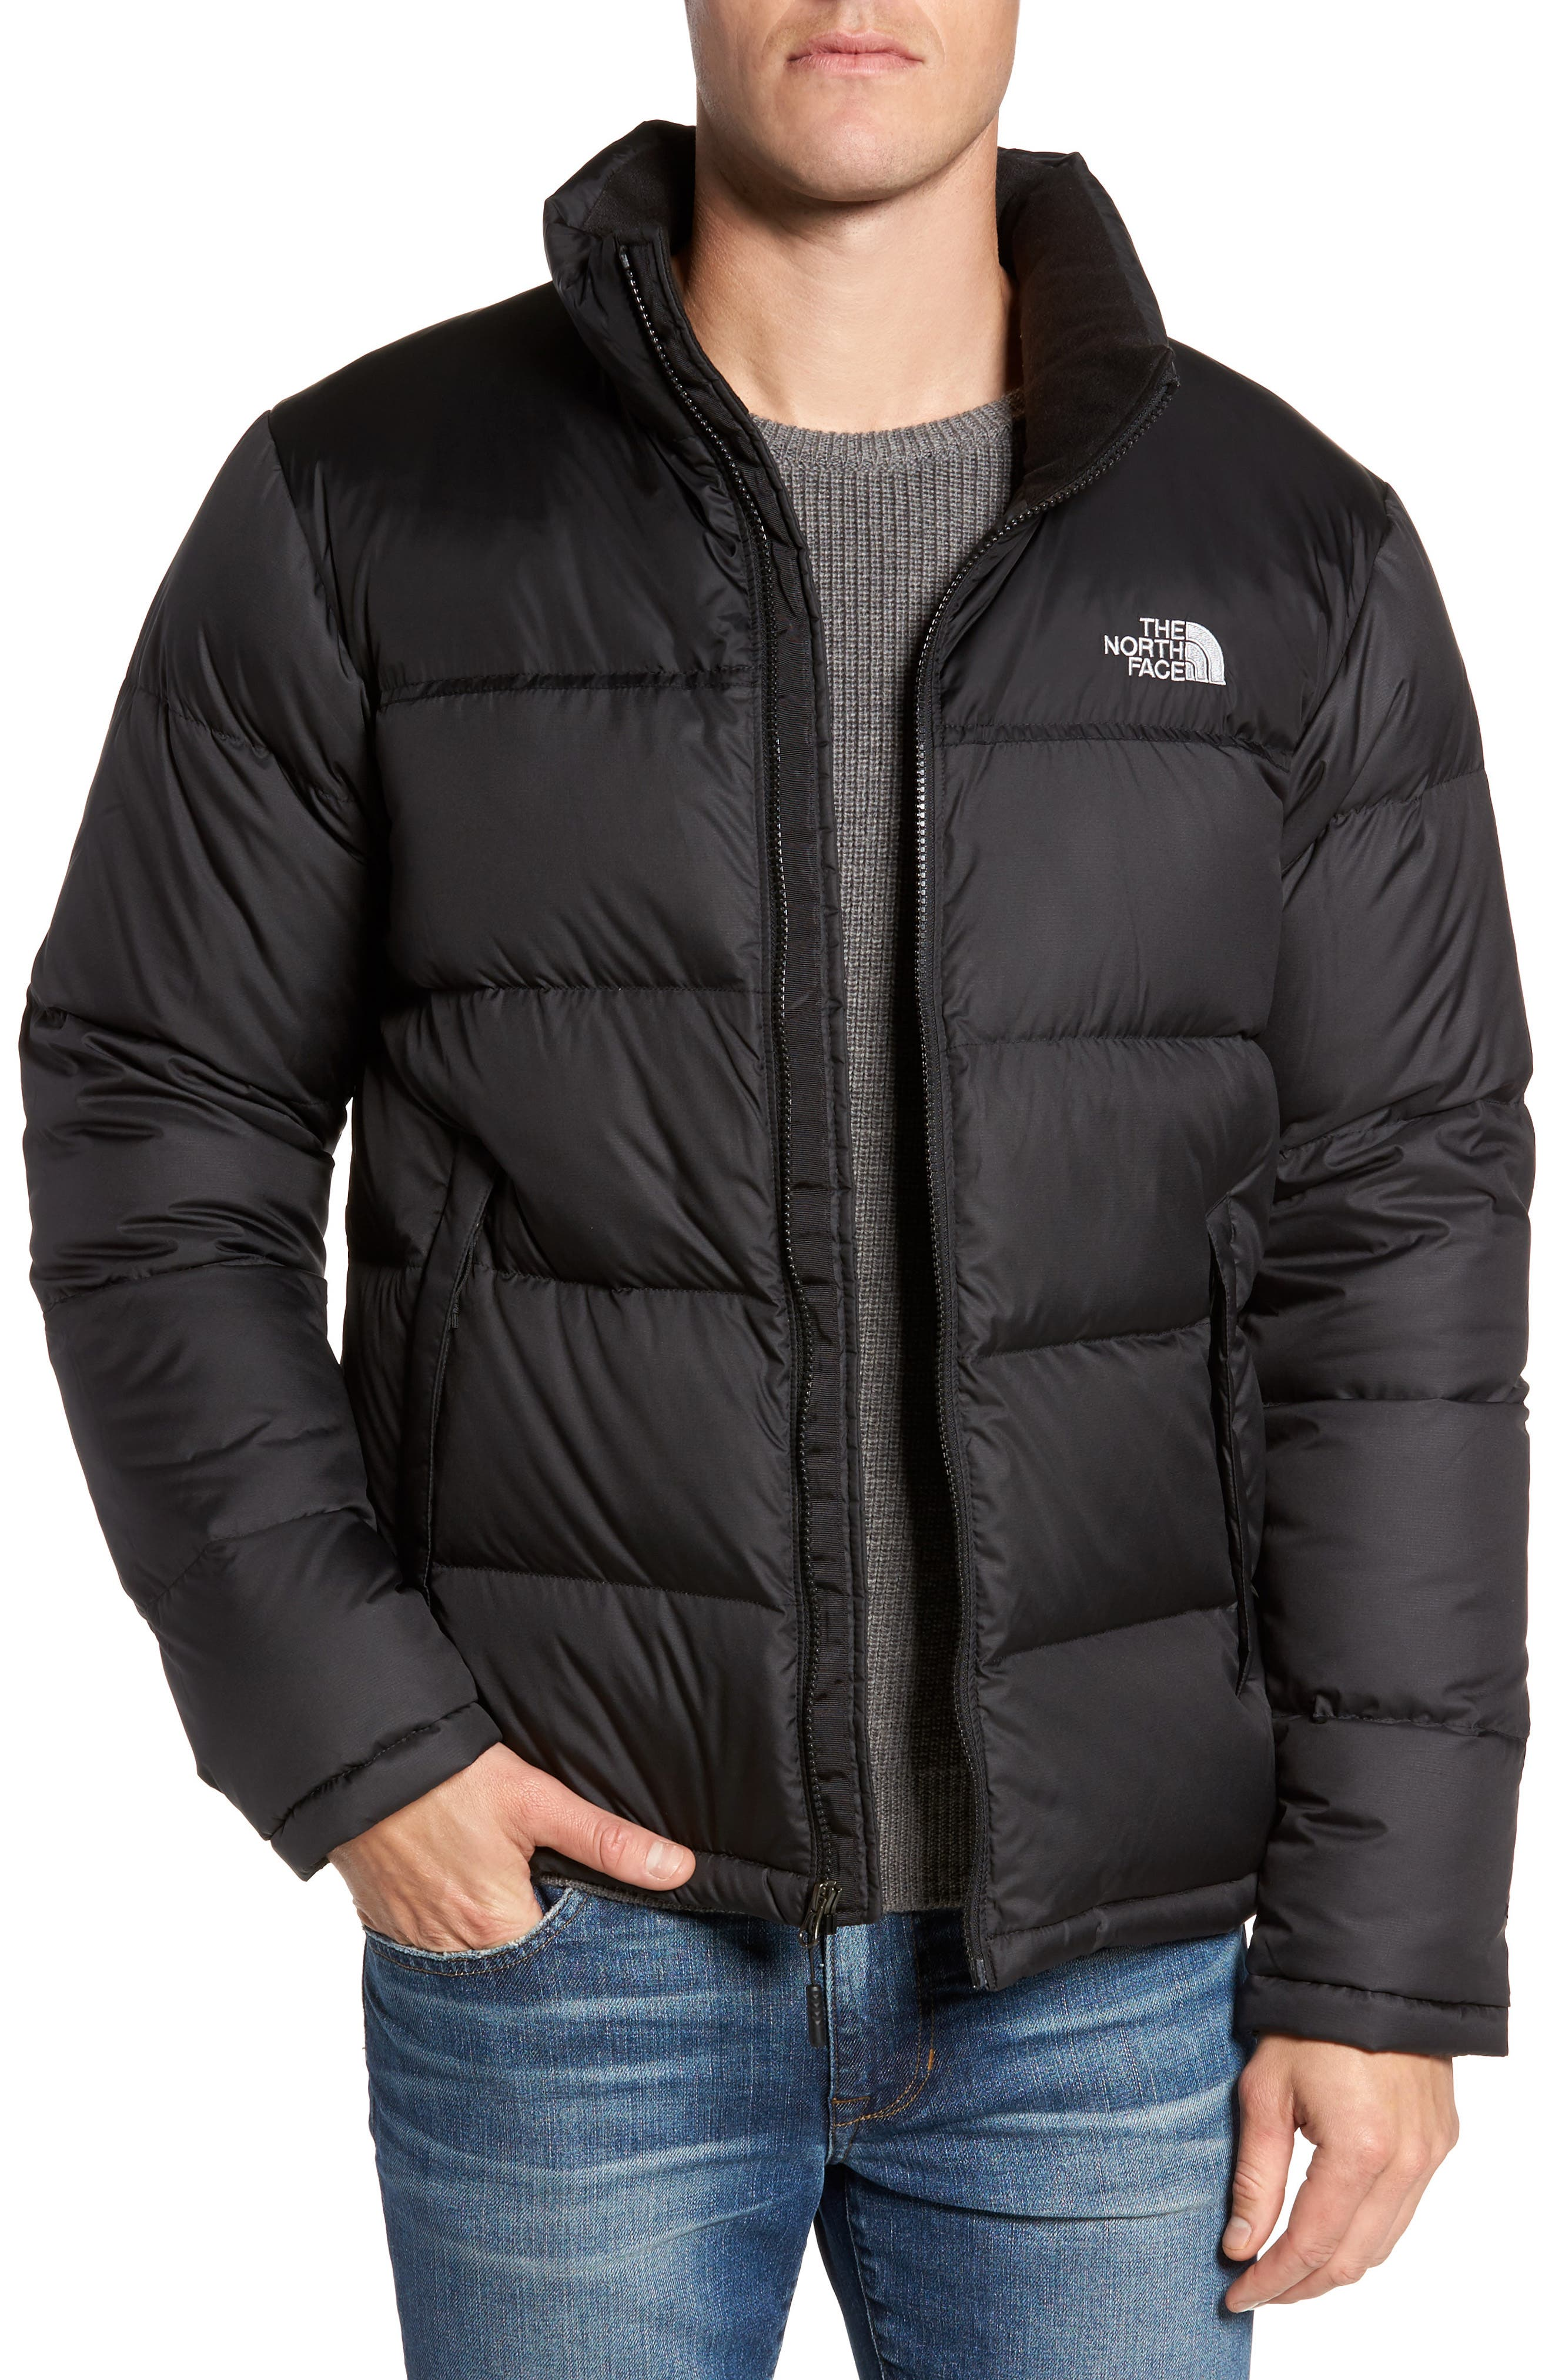 Nordstrom Half-Yearly Sale for Men (Topman, North Face, & MORE) Nordstrom is currently having its famous Half-Yearly Sale for men, with most items in their sale section discounted 33% off or more. Free Shipping & Free Returns.